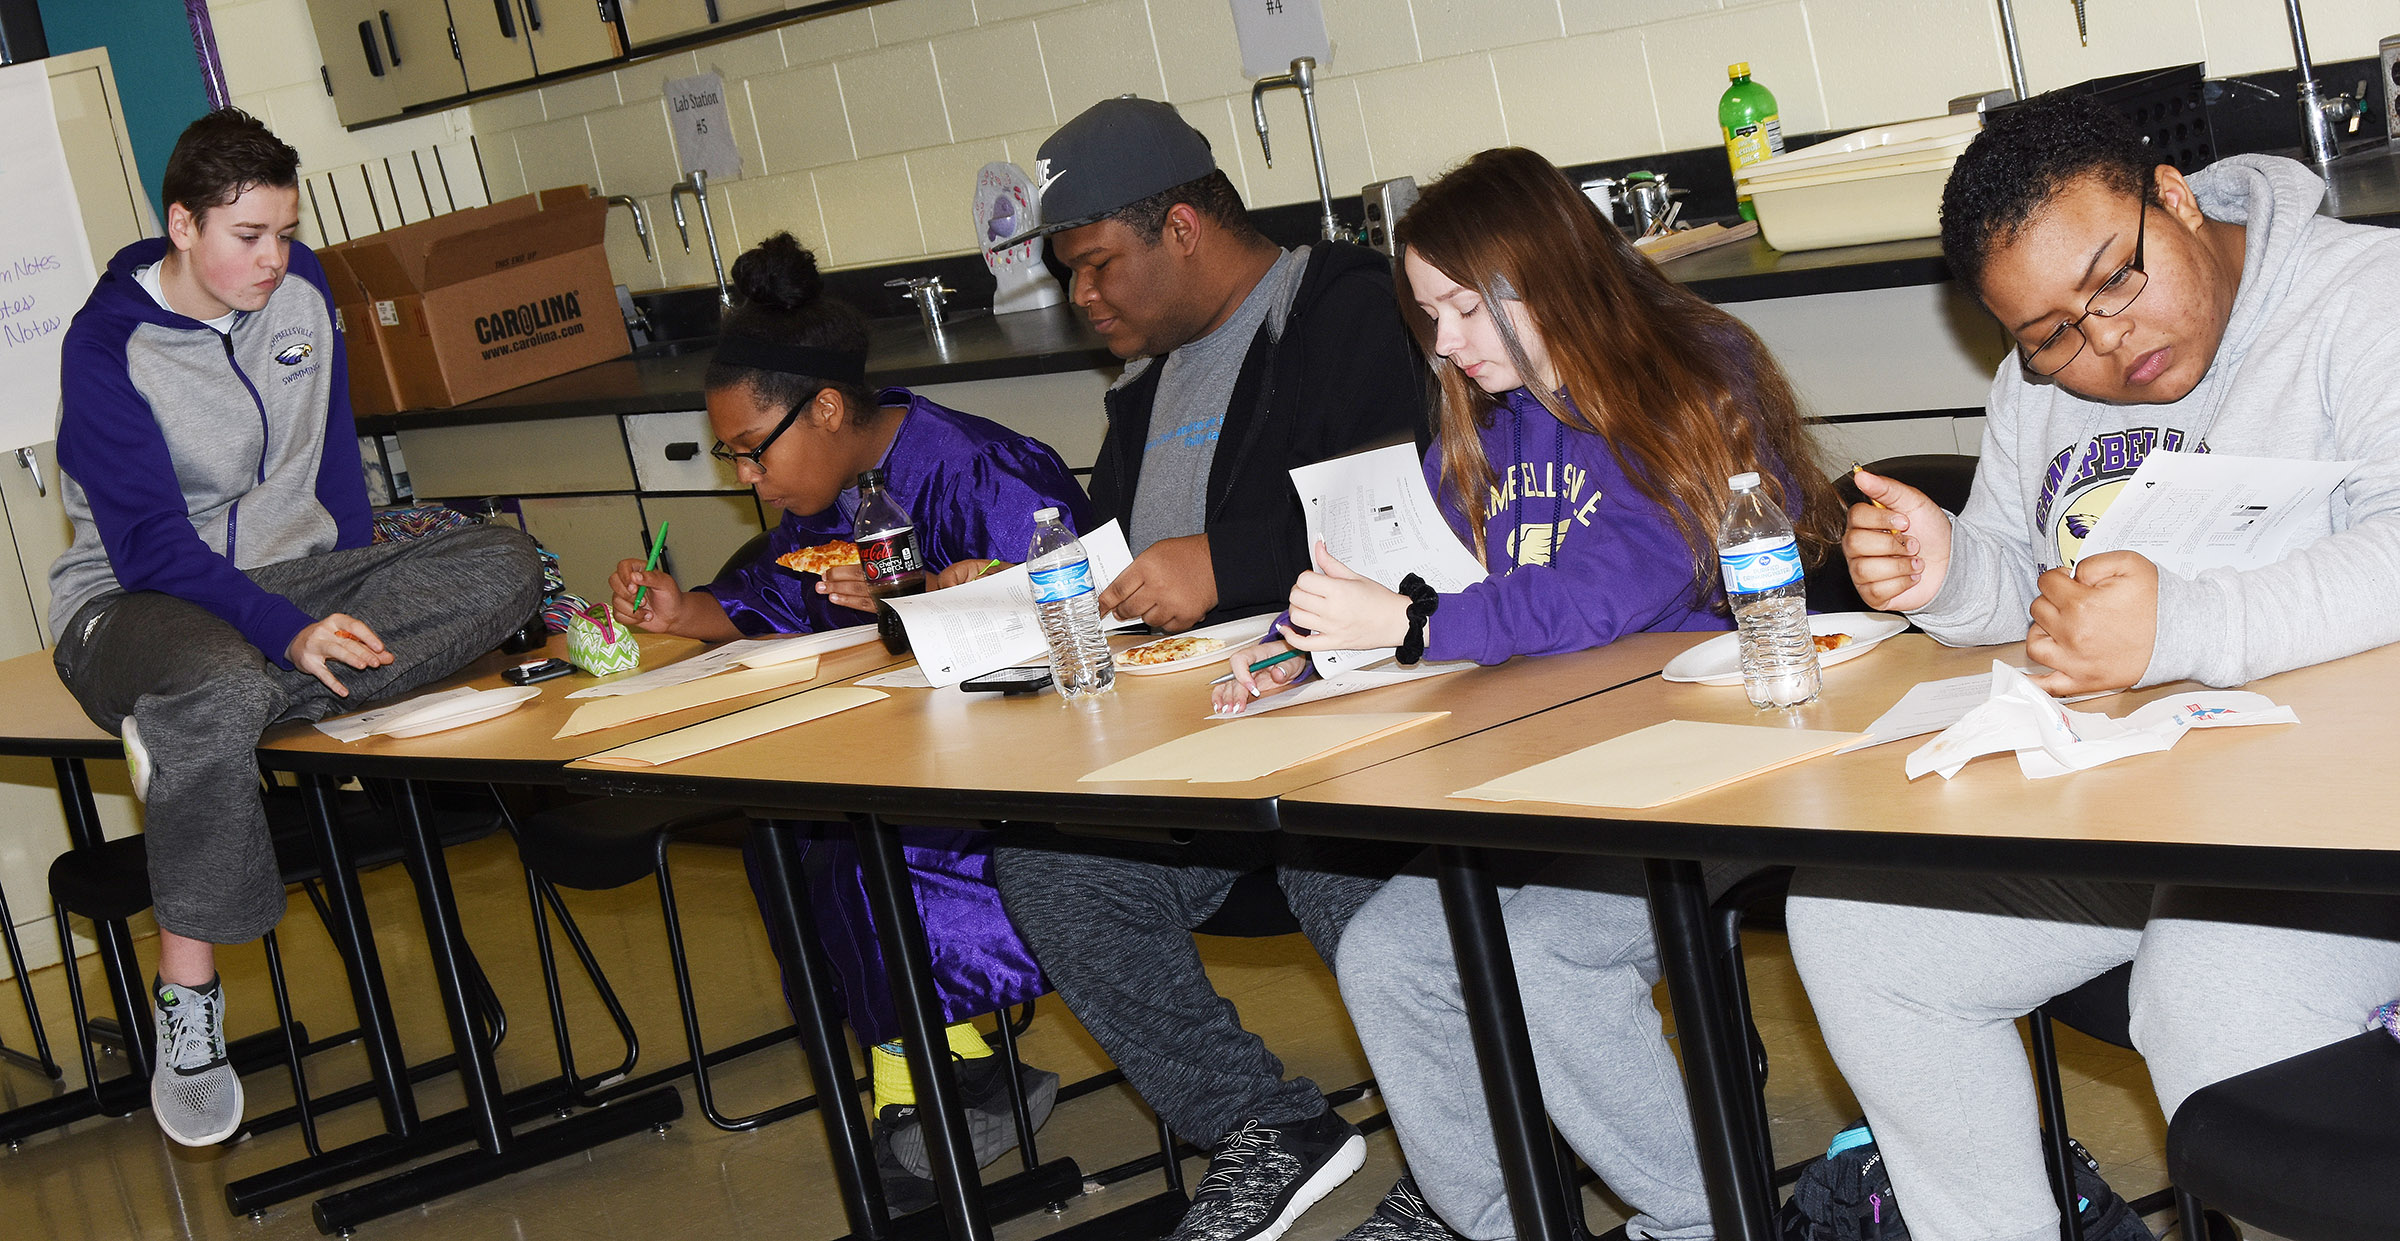 CHS students, from left, sophomores Gavin Johnson and Zaria Cowan and juniors Jeremiah Jackson, Christa Riggs and Natalie Caldwell answer questions during a science ACT workshop.